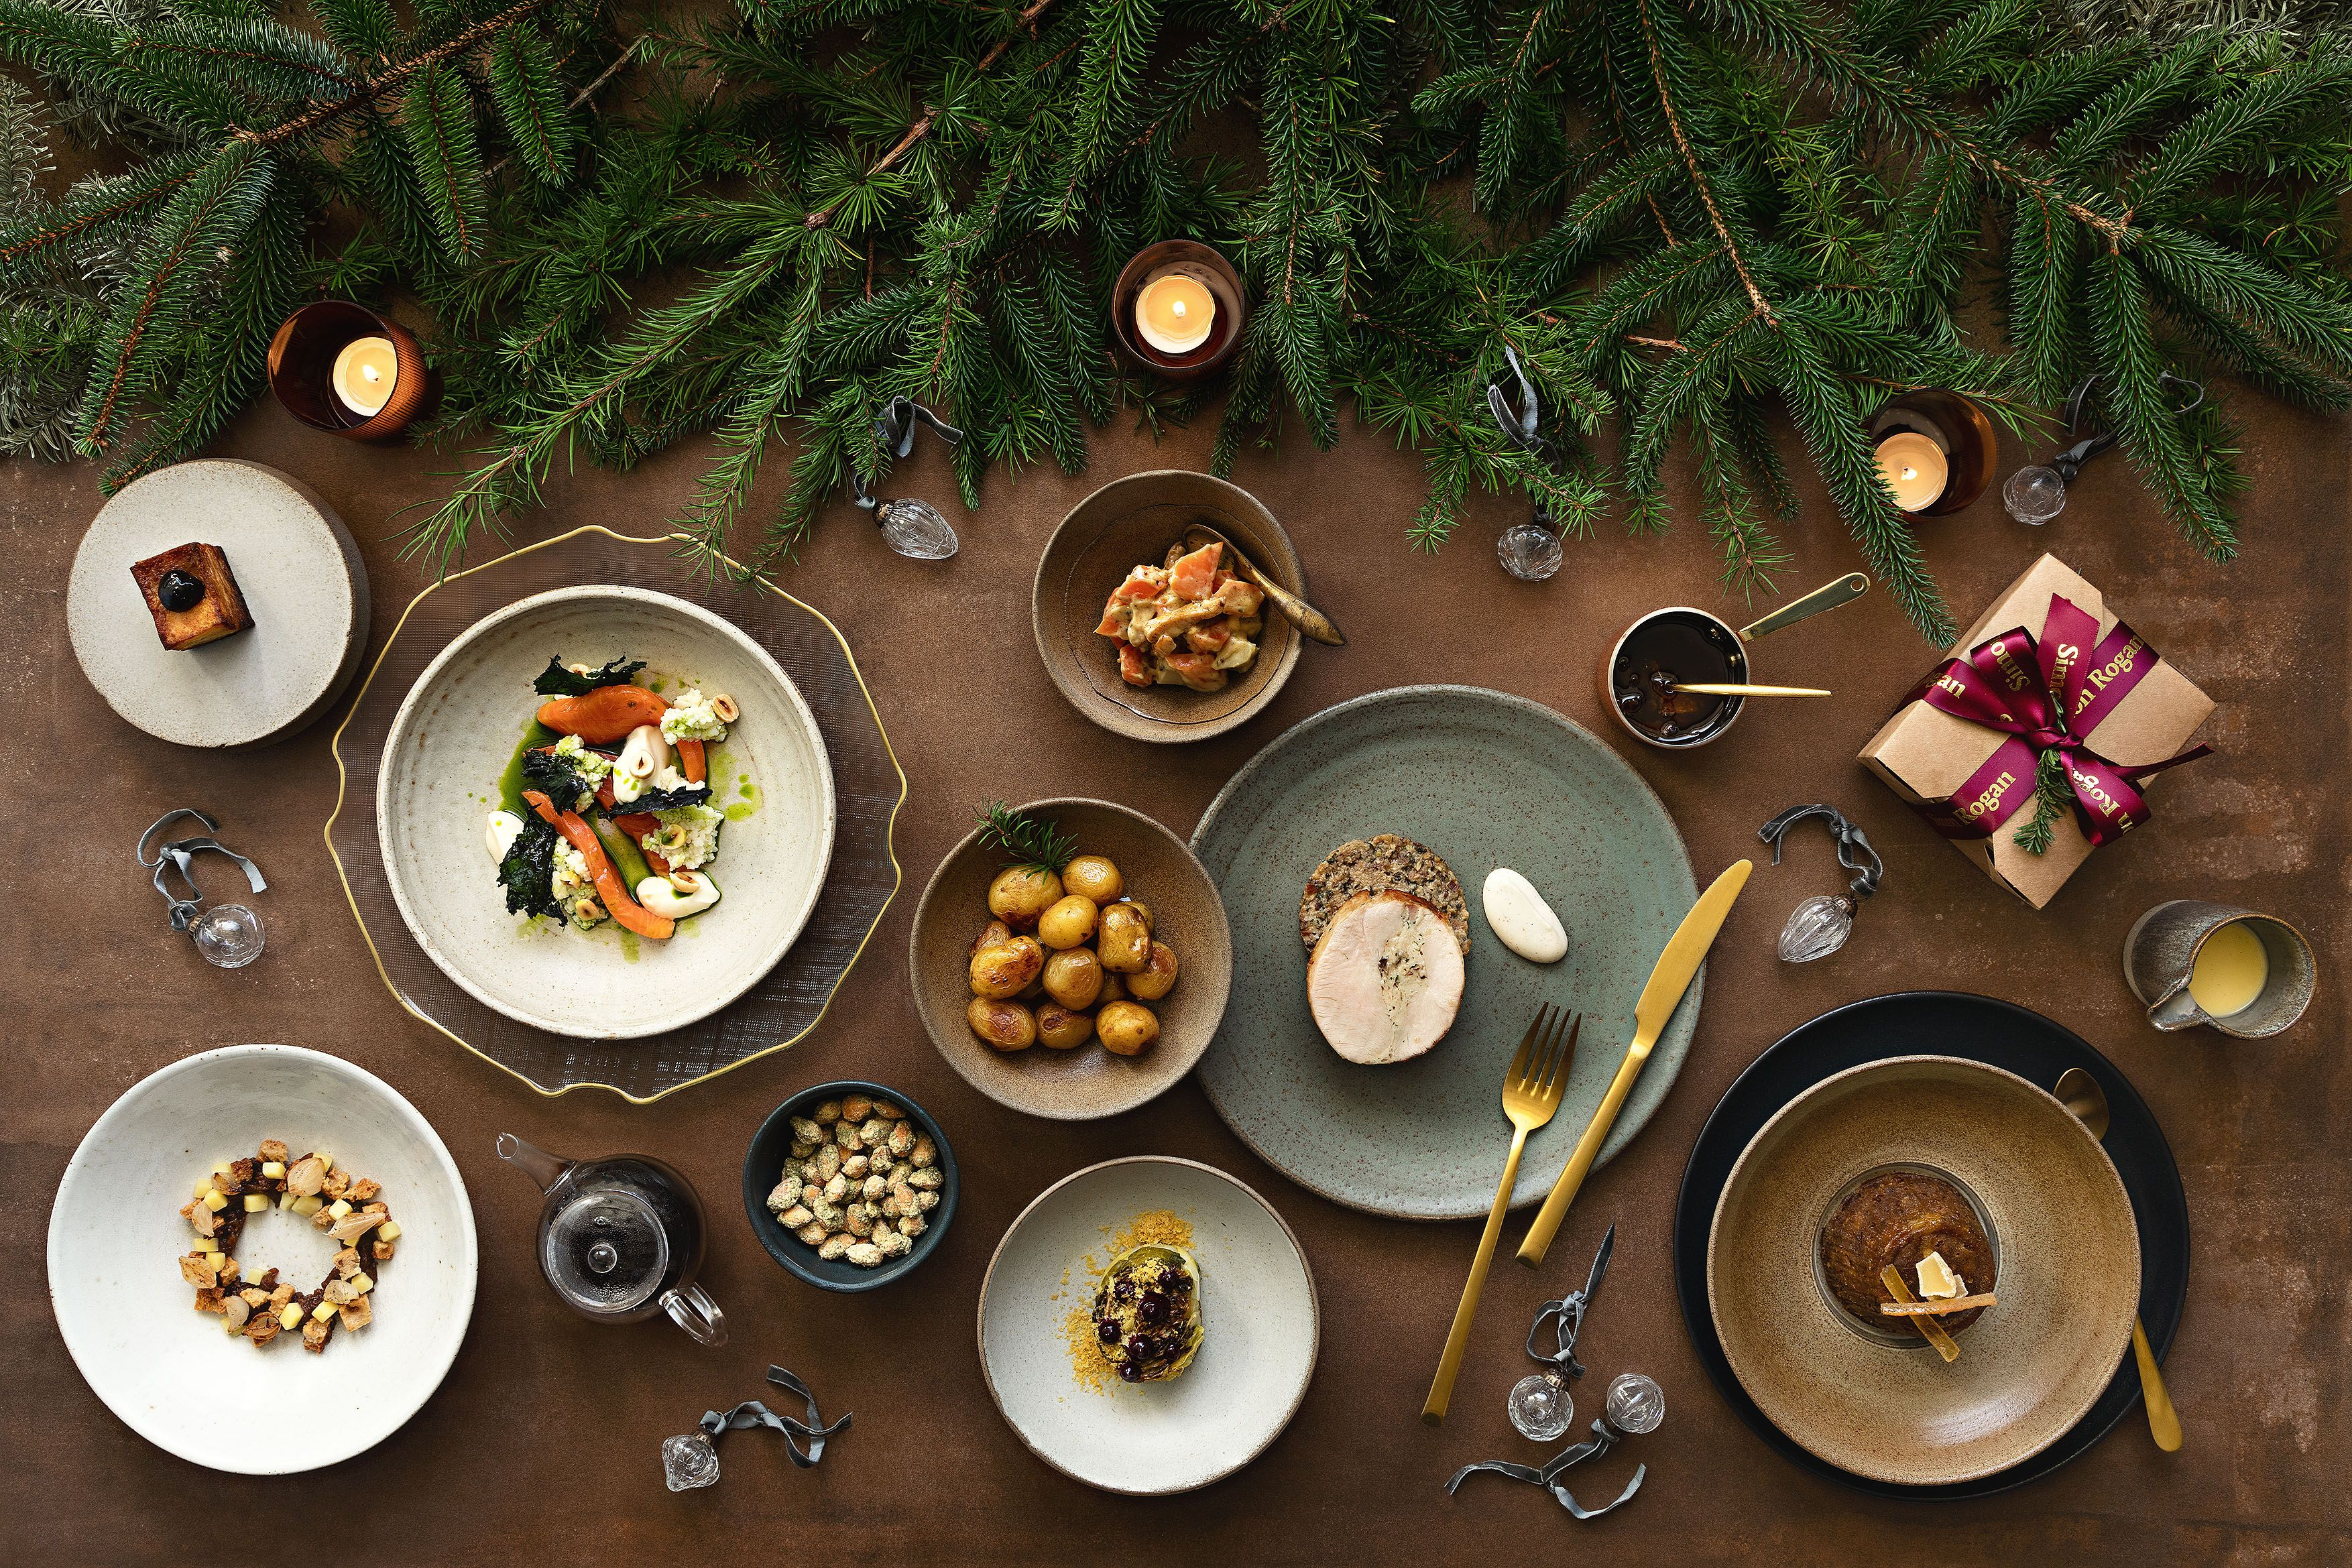 Our guide to the best Christmas food delivery services